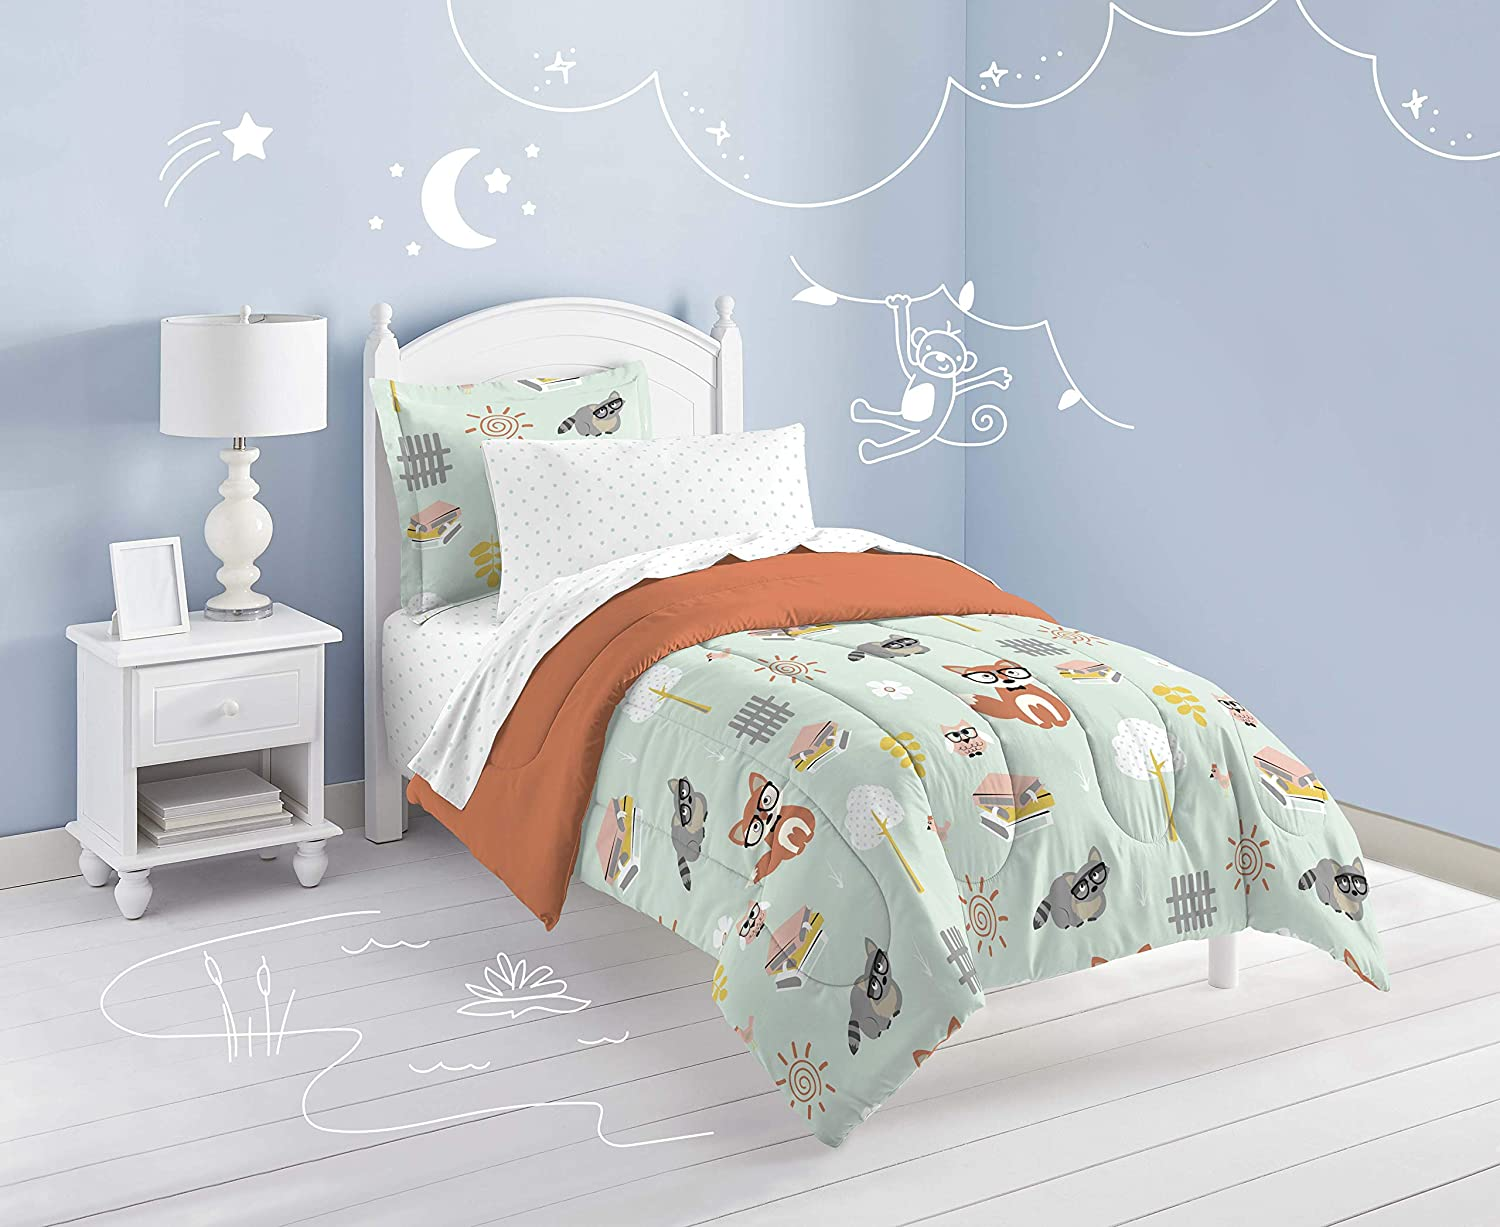 Twin dream FACTORY Casual Woodland Friends Comforter Set Green CHF Industries 2A850501GR